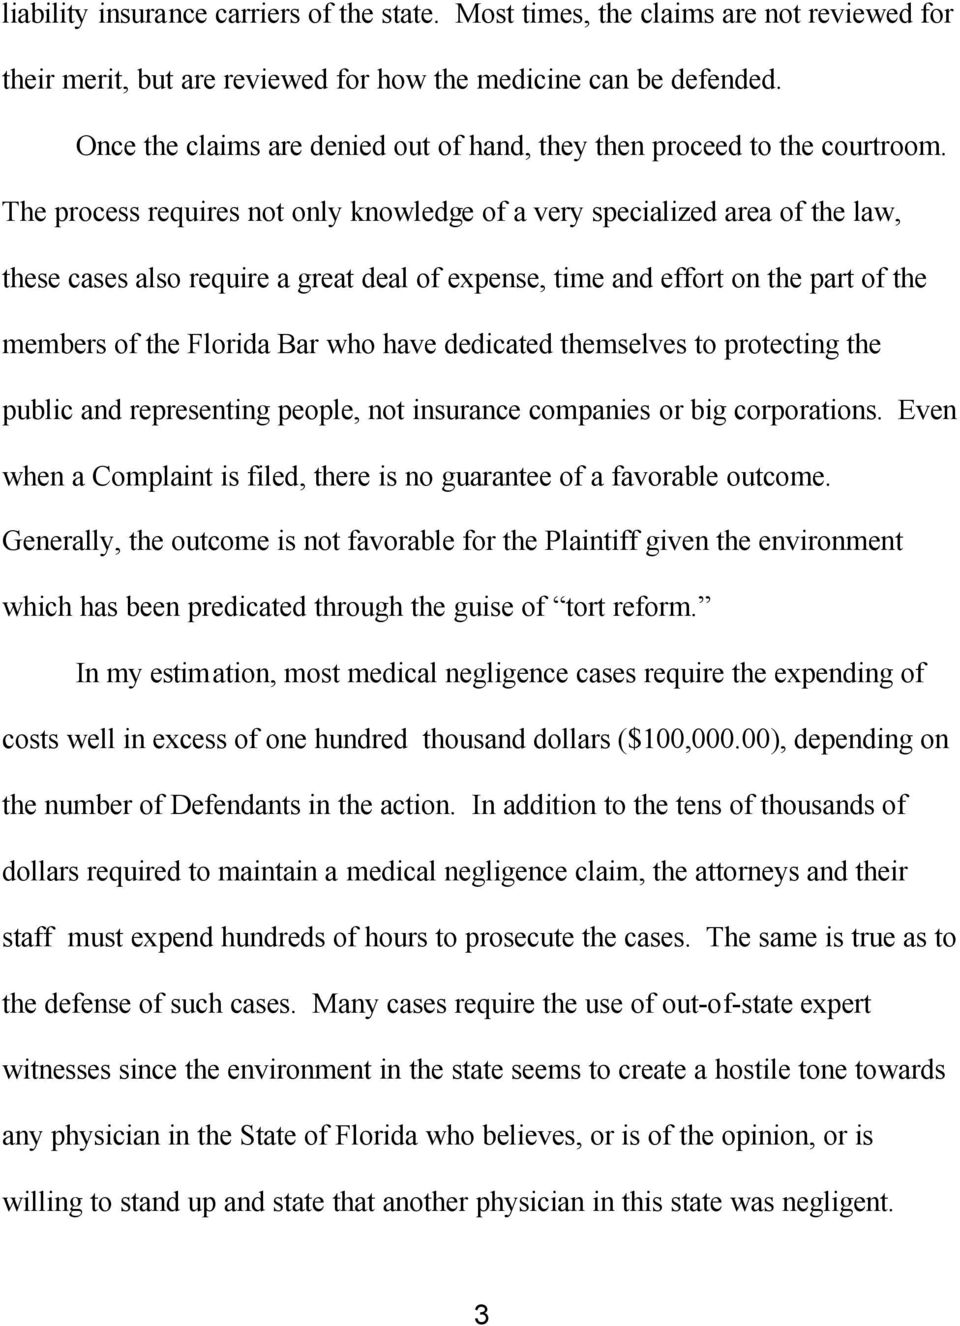 The process requires not only knowledge of a very specialized area of the law, these cases also require a great deal of expense, time and effort on the part of the members of the Florida Bar who have